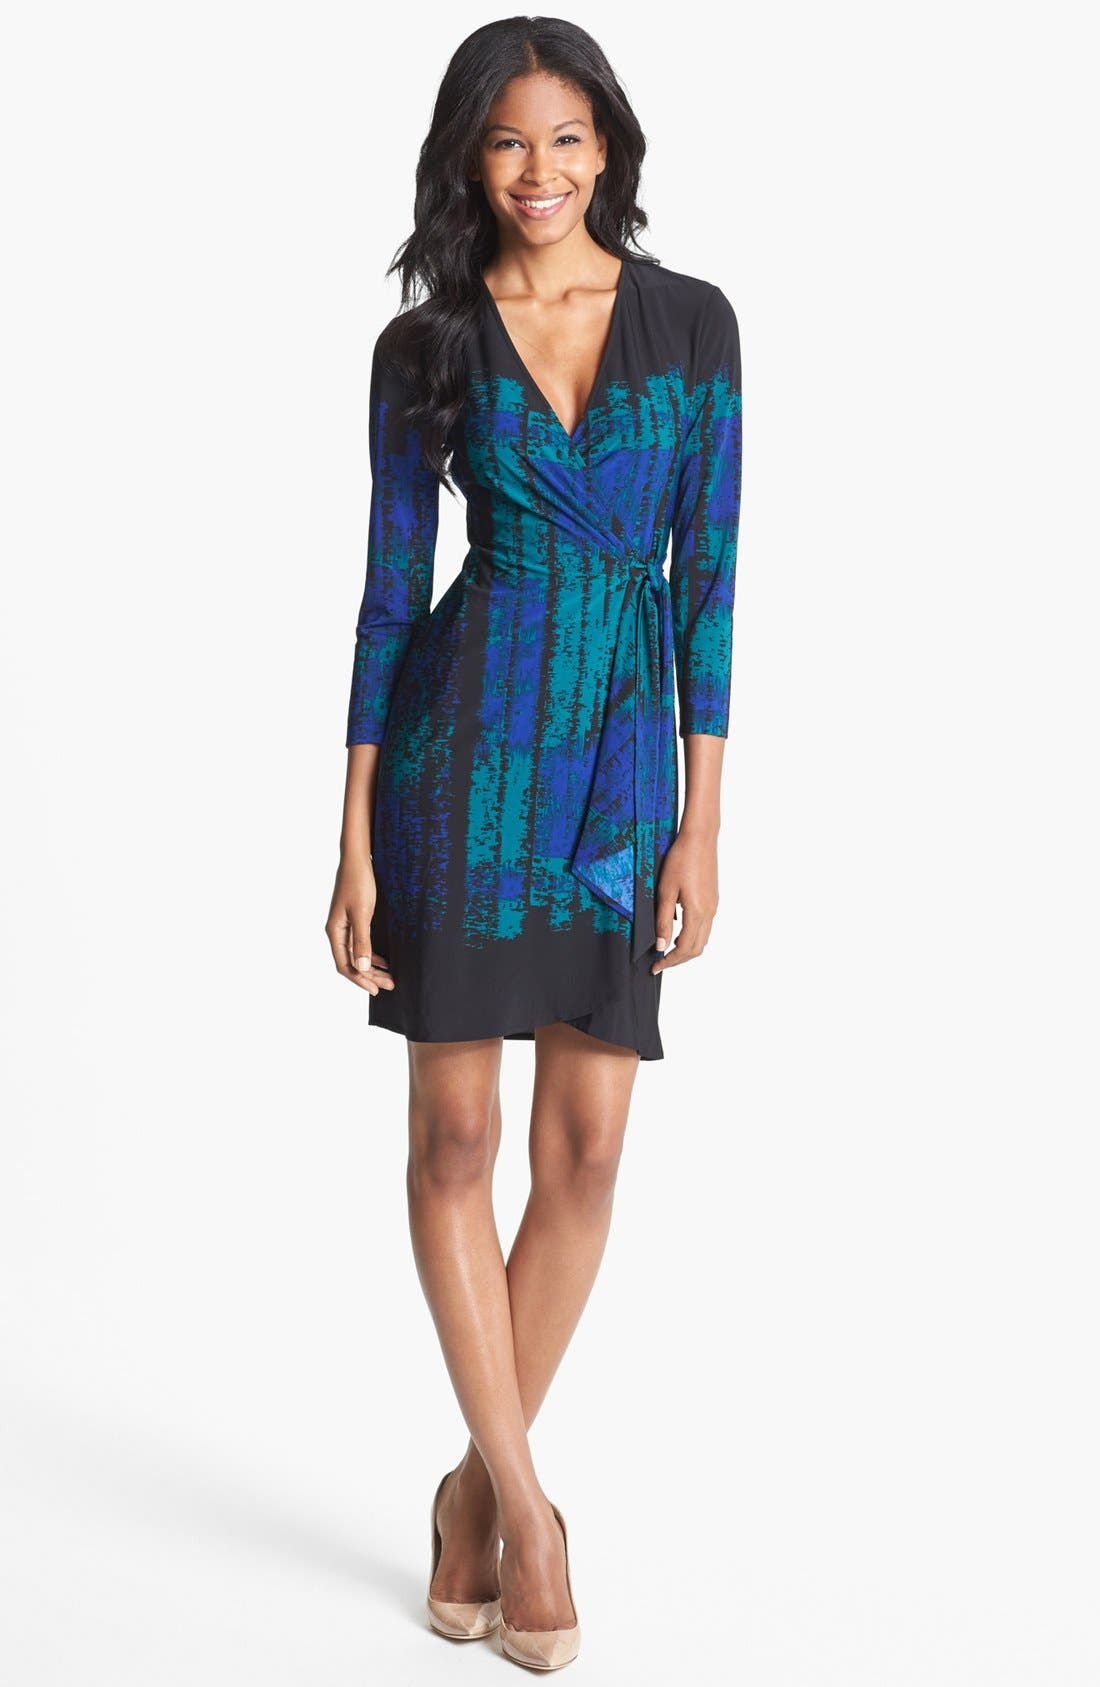 Alternate Image 1 Selected - BCBGMAXAZRIA 'Adele' Print Jersey Wrap Dress